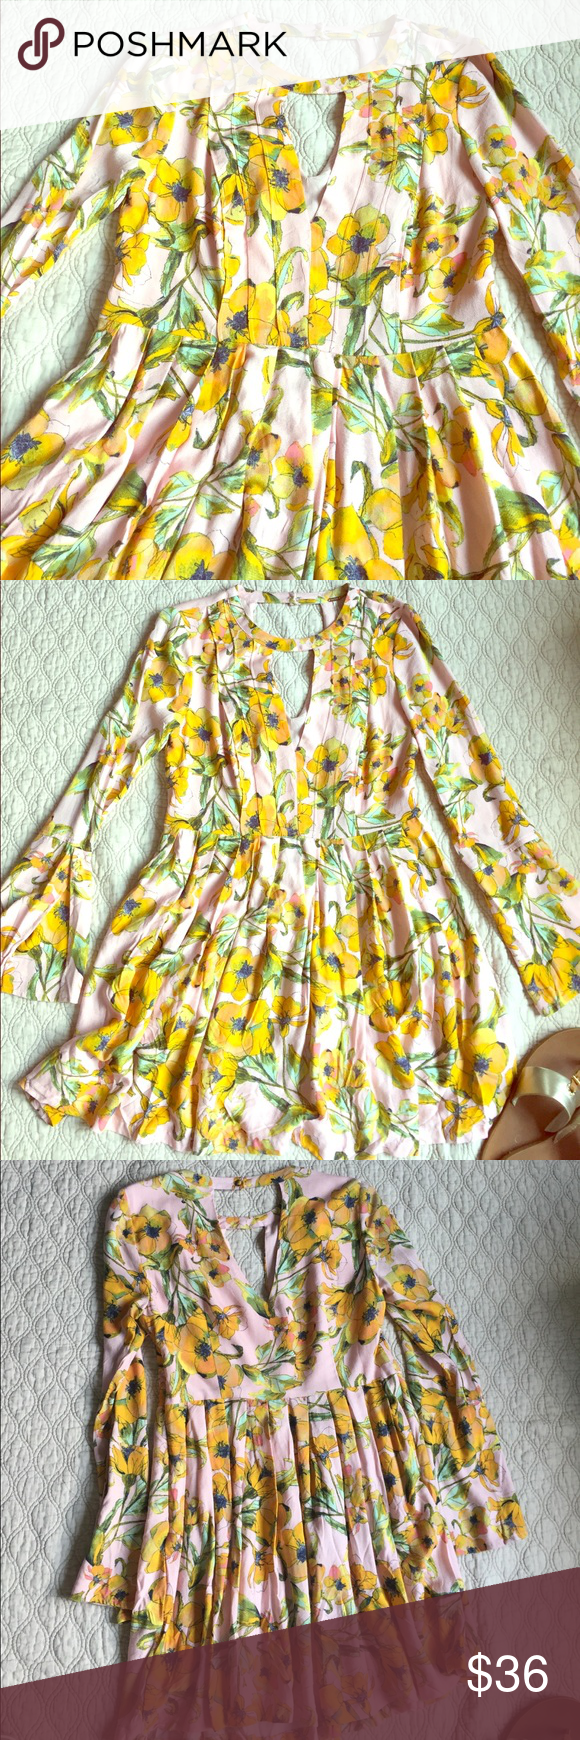 Free People Tegan Floral Baby Doll Dress Beautiful floral design, key hole cut outs at neckline and in back, functional pockets, side zipper closure. This is a perfect dress to wear with wedges now and booties in the fall. Looks like store sensor created a little pinhole sized hole on material. Barely noticeable but I included a photo for reference. NWT Size 6 Free People Dresses Mini